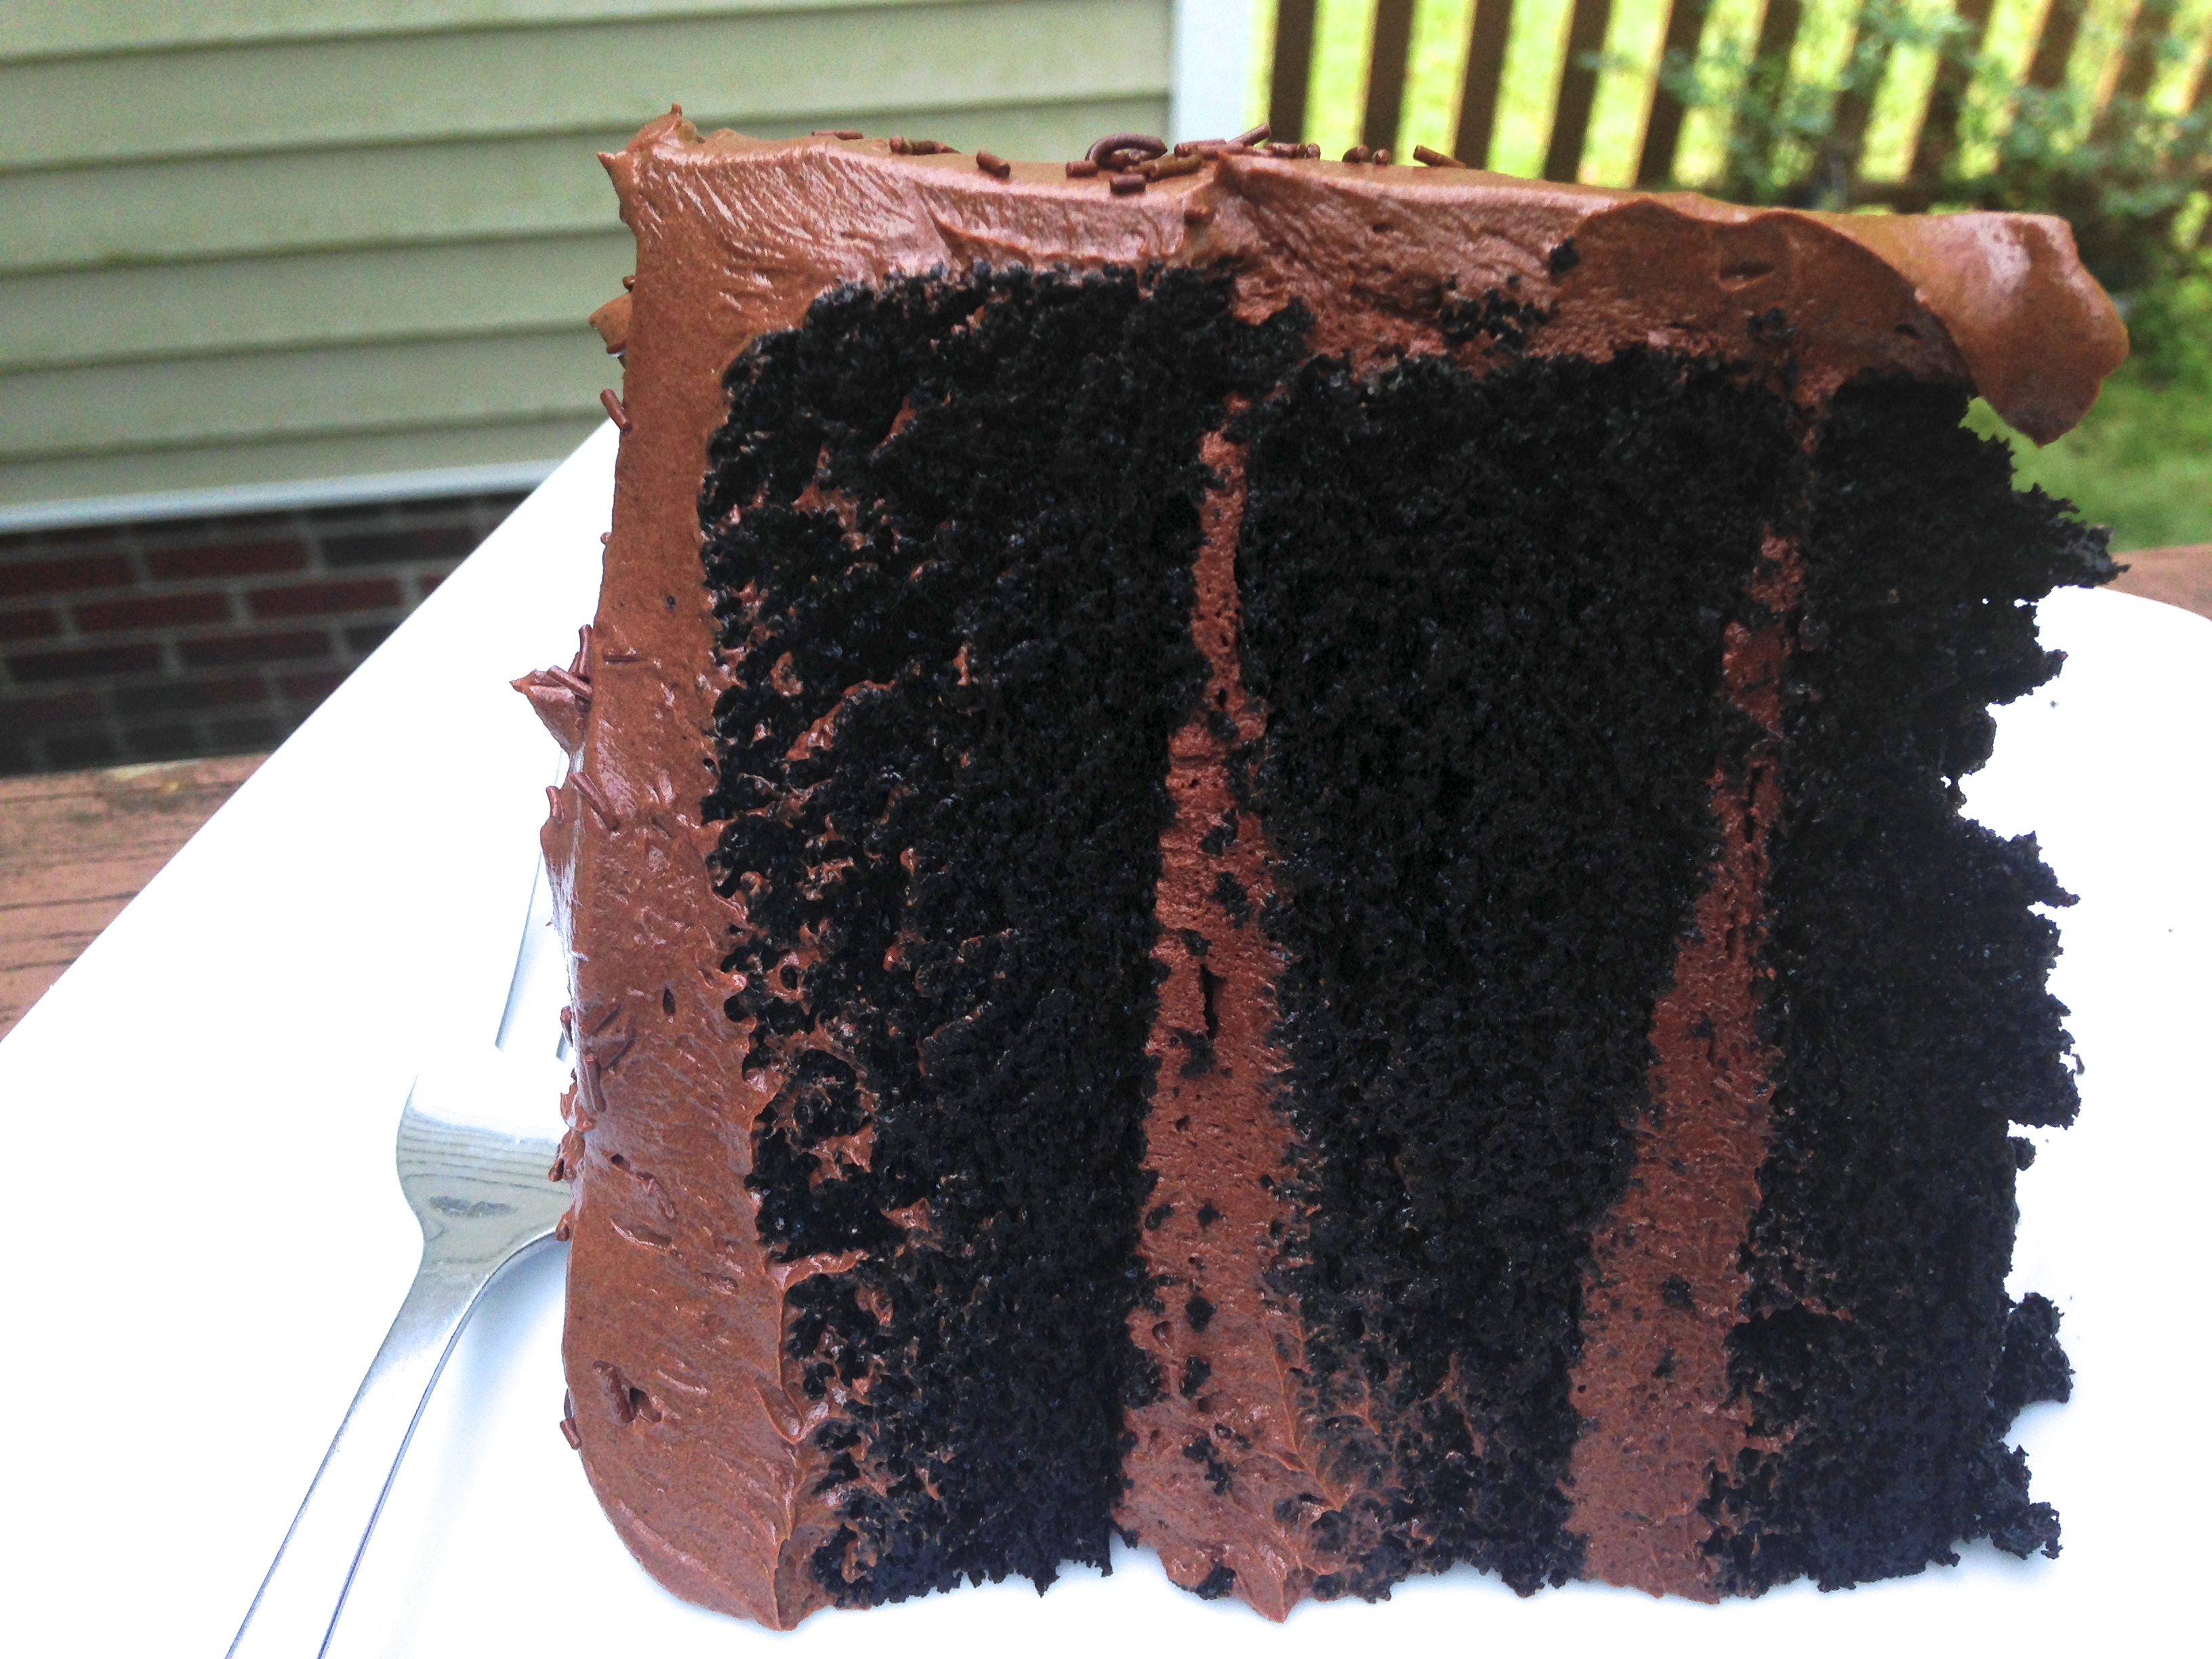 The Best Chocolate Cake You'll Ever Make- I promise!